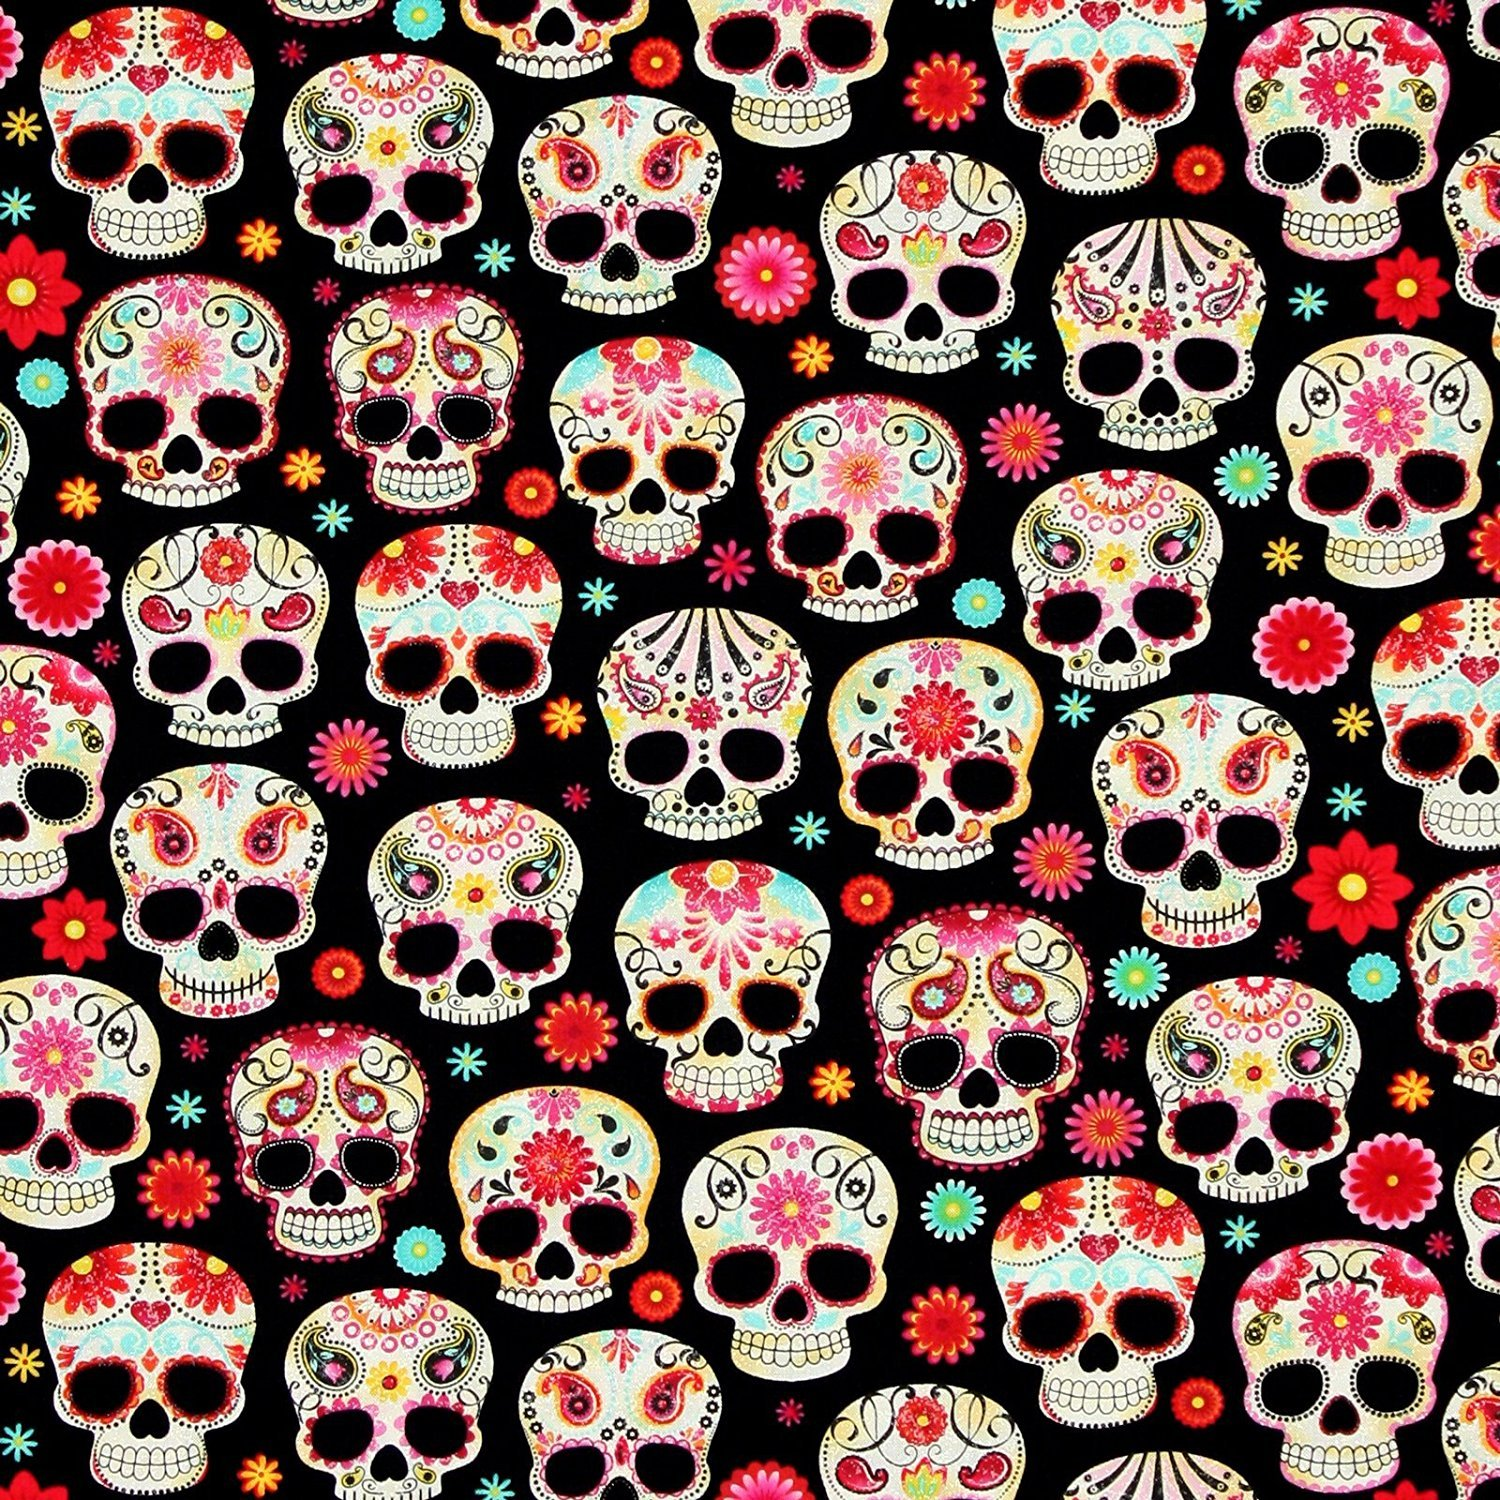 Fun C4139 Sugar Skulls - Black